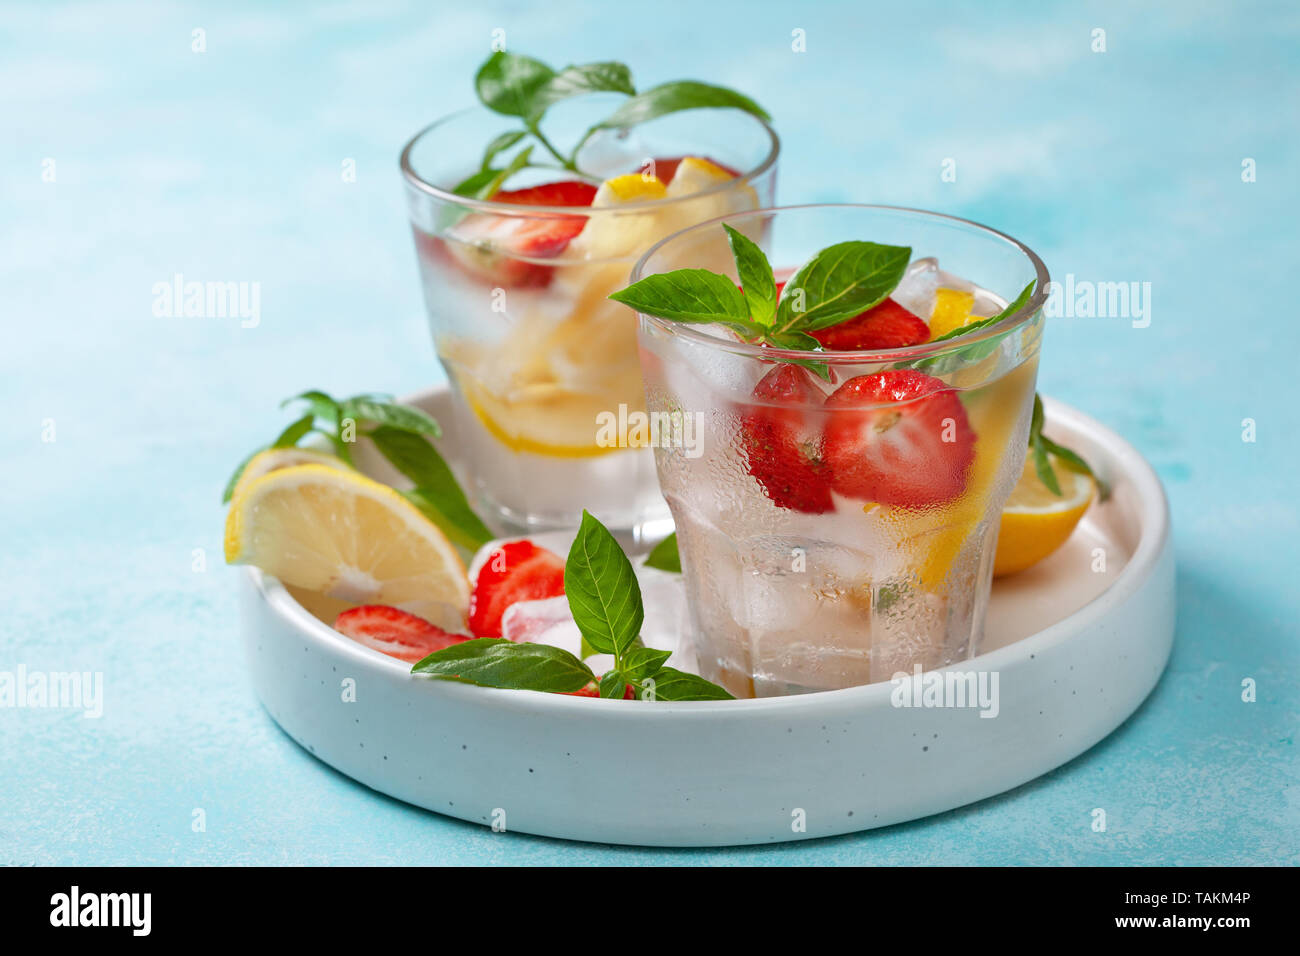 strawberry basil lemonade in a glass, fresh strawberries, basil on a blue background Stock Photo